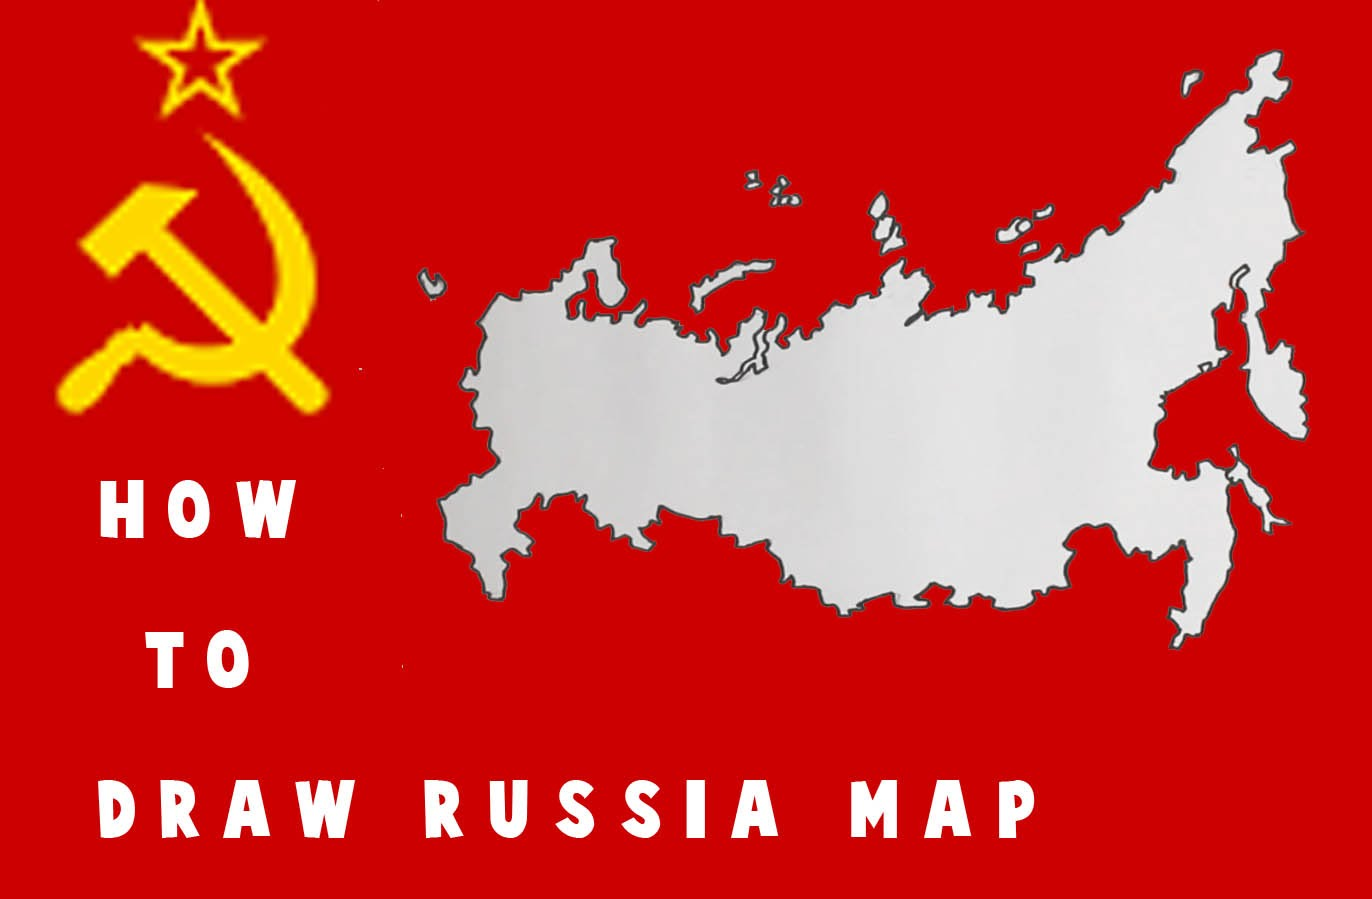 How to draw Russia